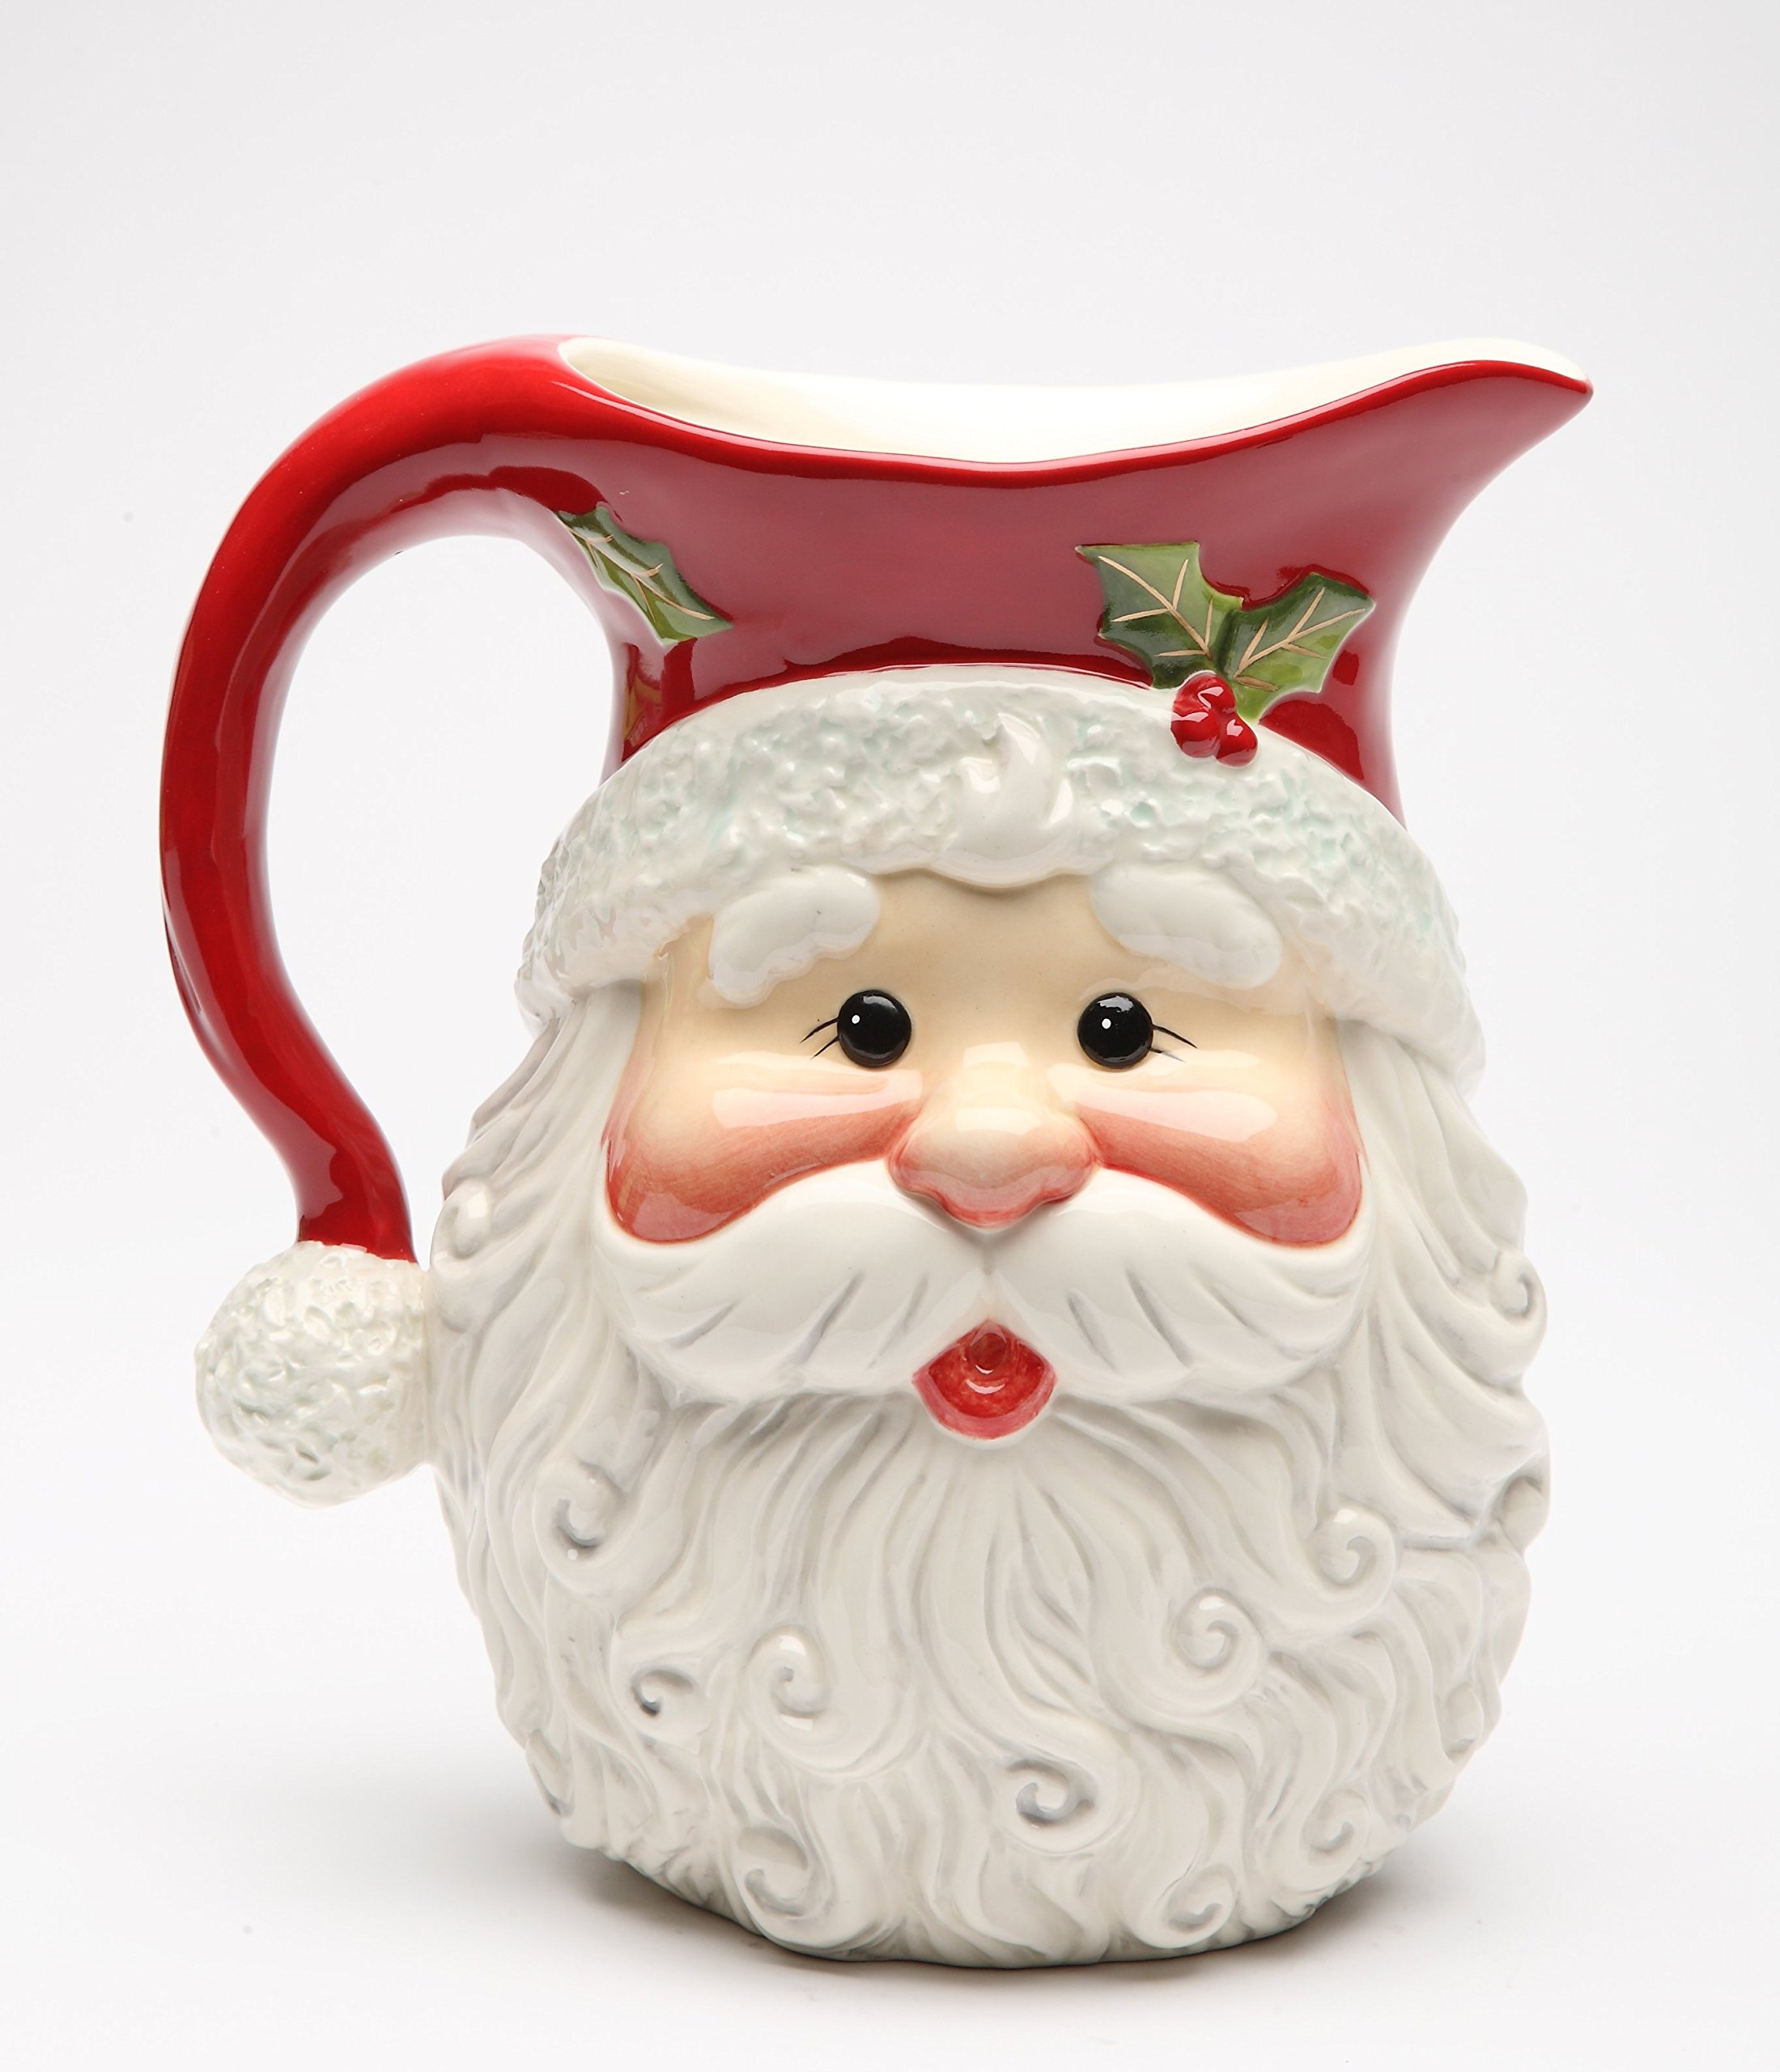 Cosmos Gifts 10636 Fine Ceramic I Believe: Christmas Santa Pitcher, 8'' H by Cosmos Gifts